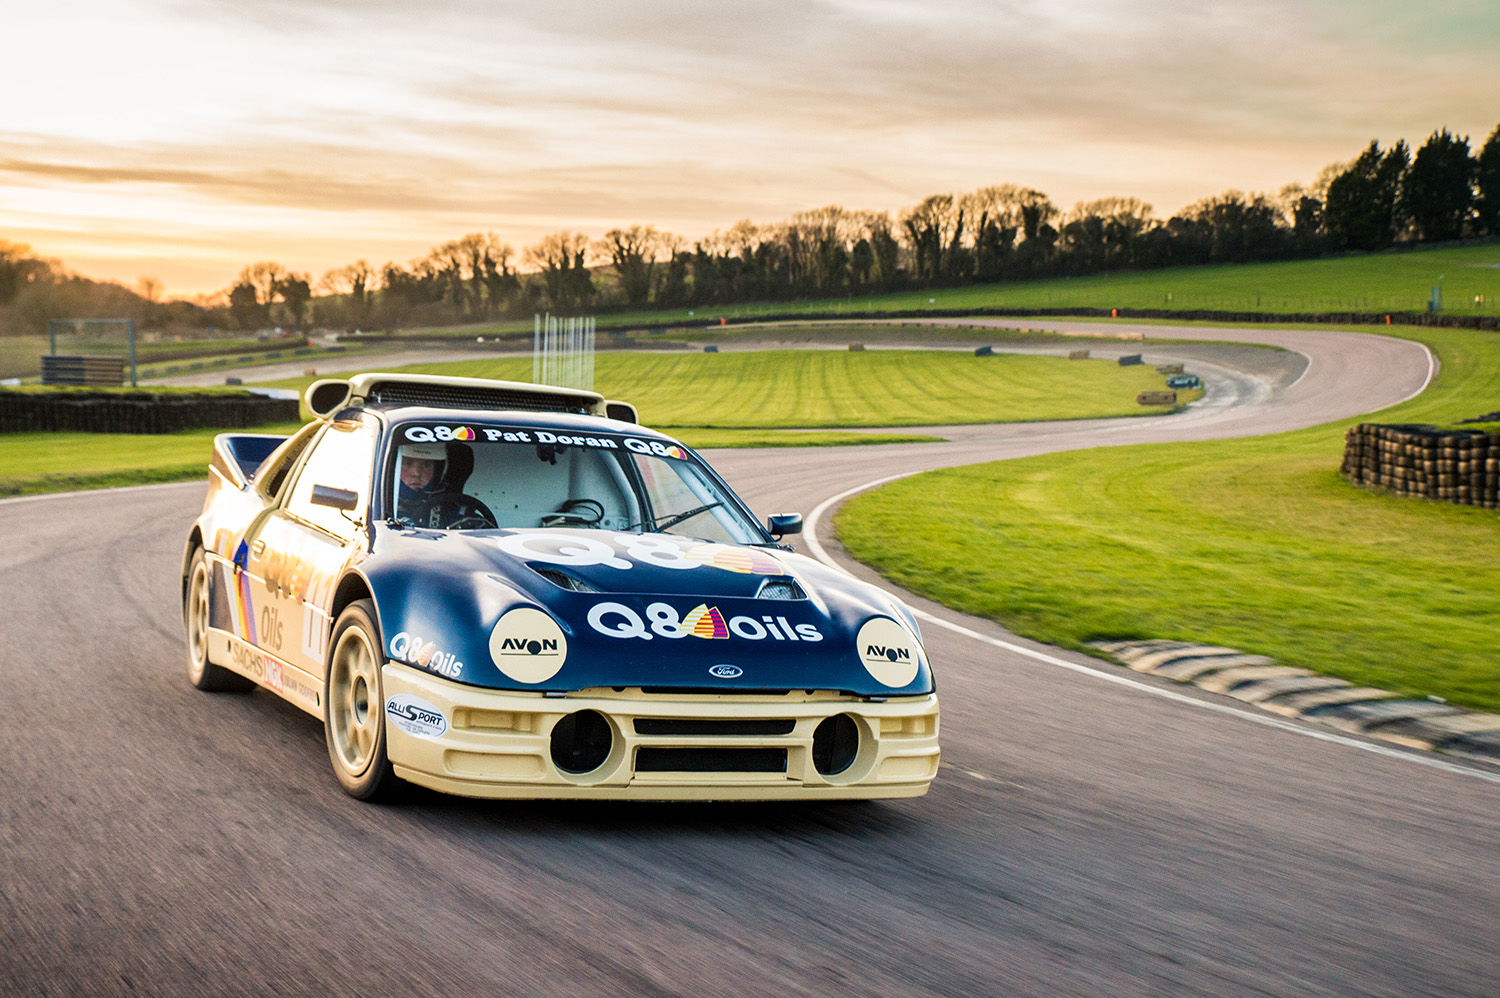 Jayson-Fong-Photography-Form-and-function-international-Ford-RS200.jpg